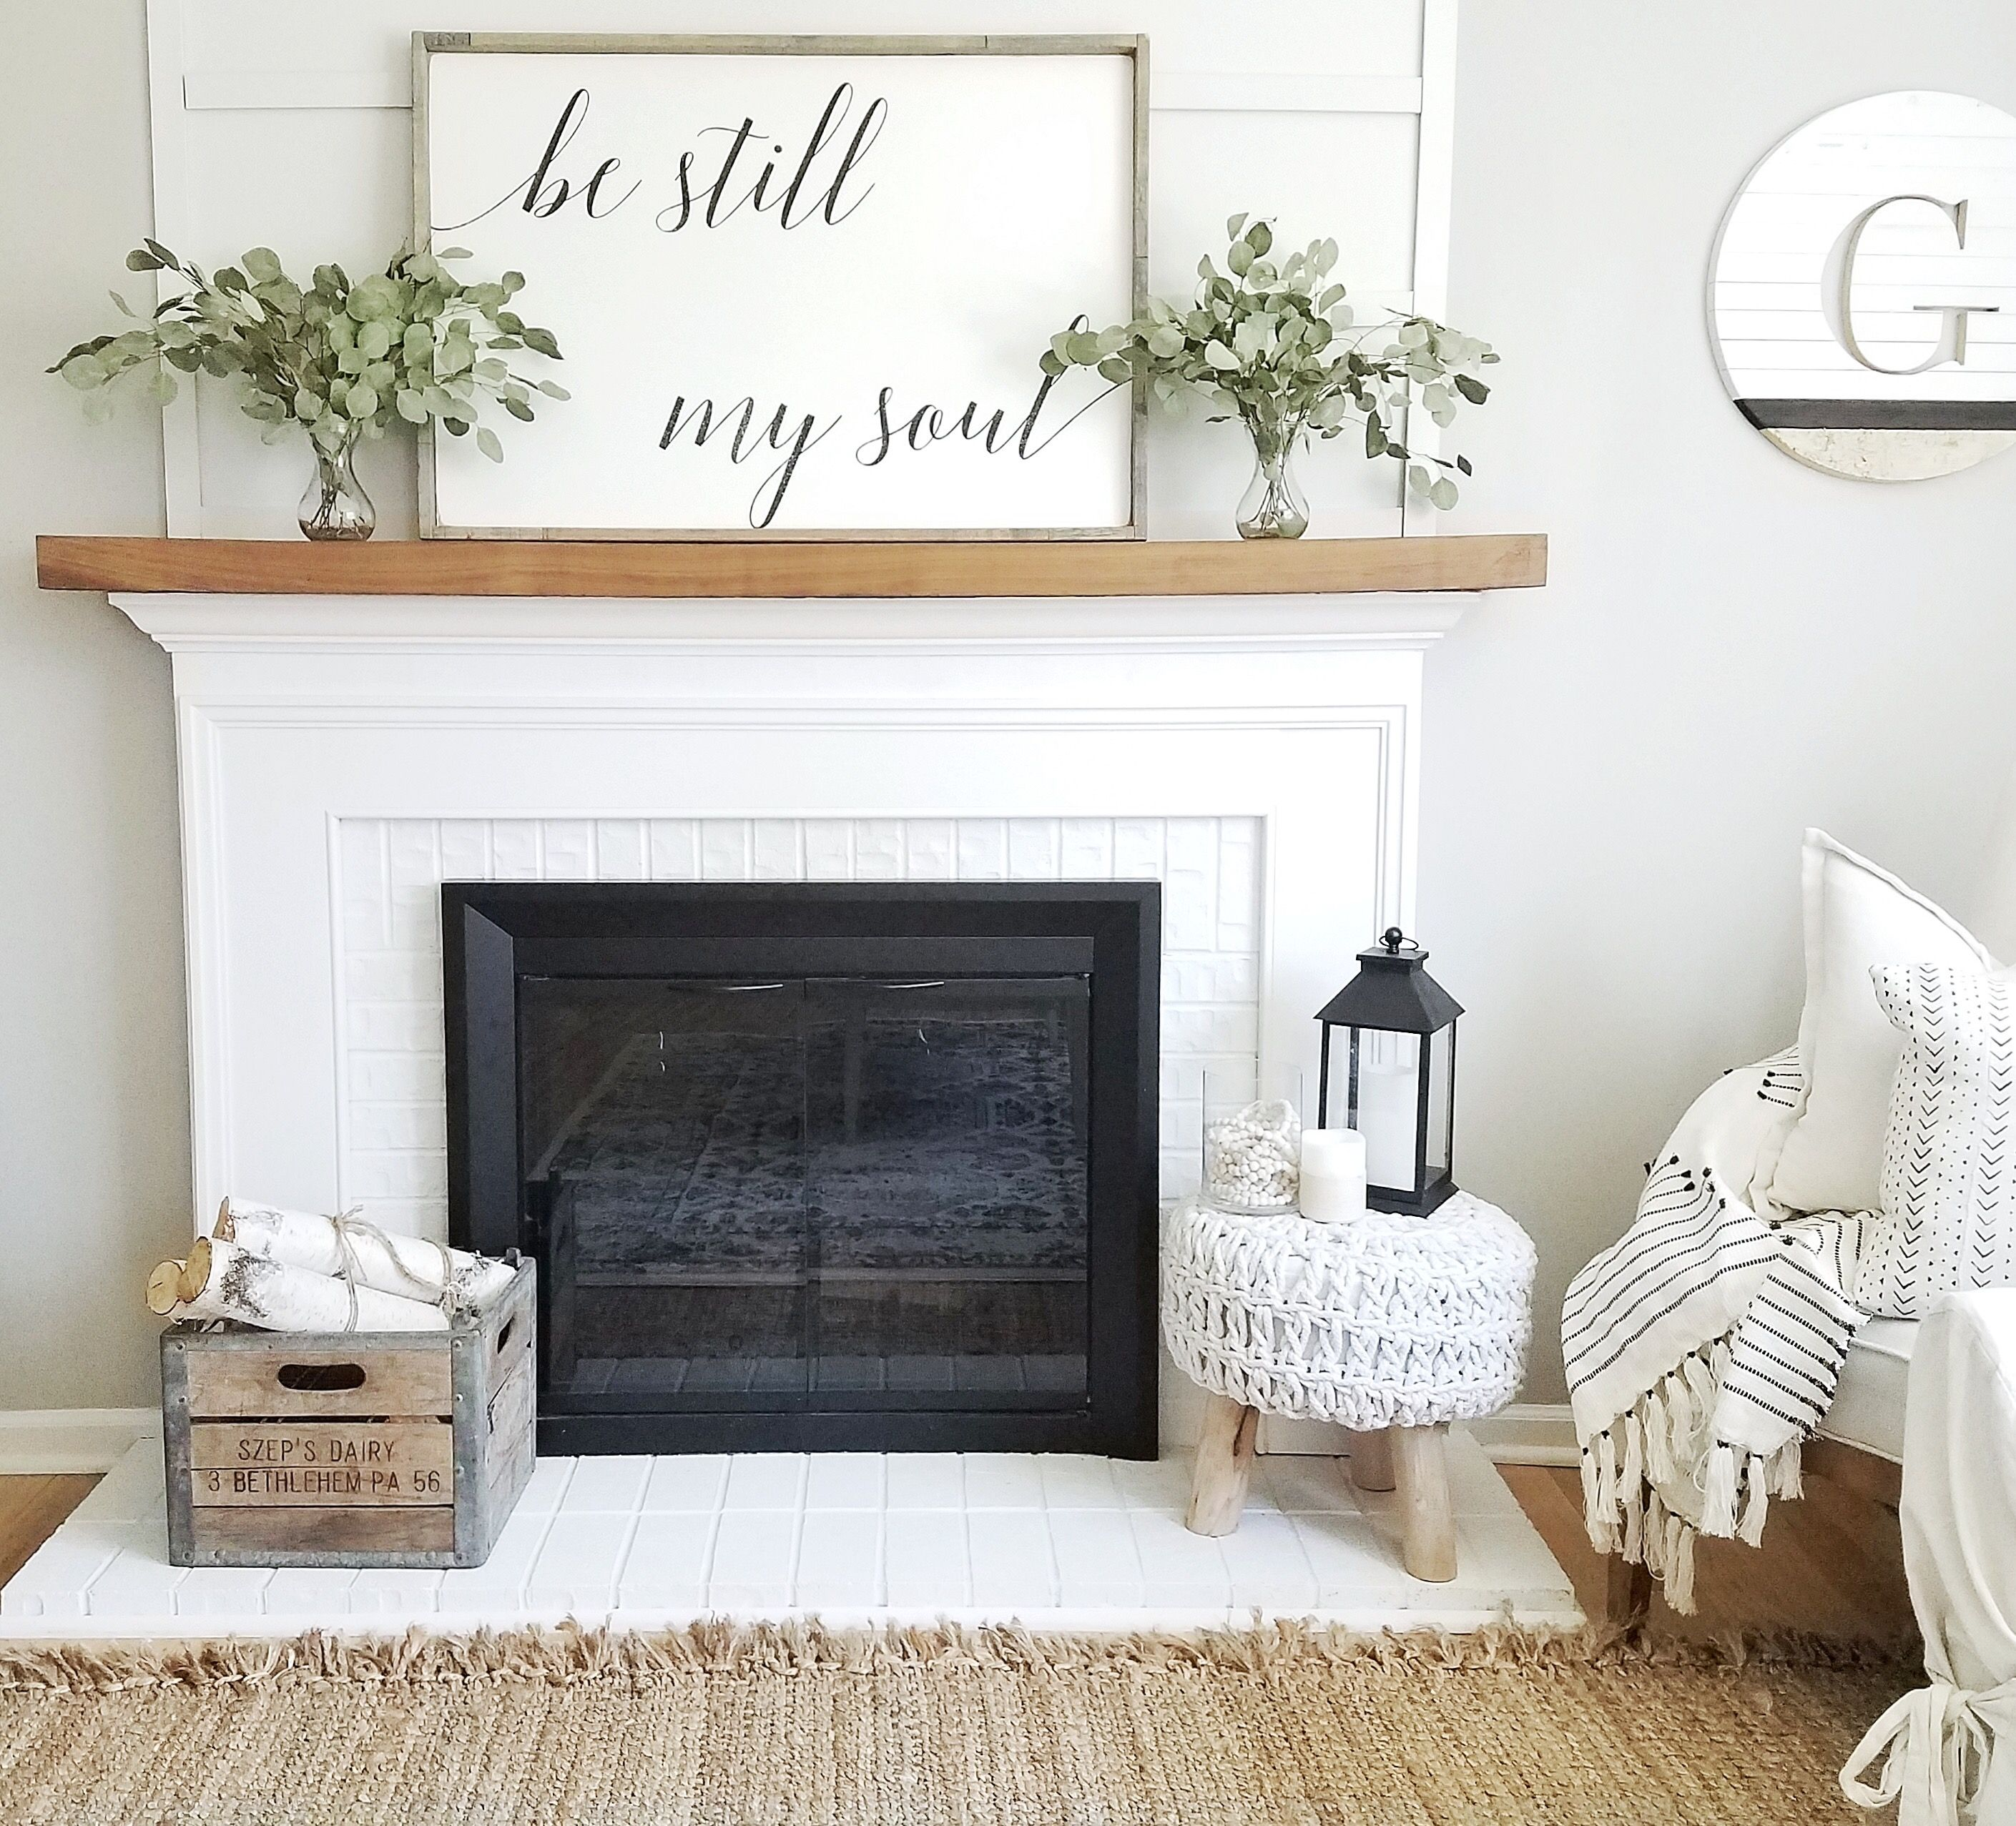 Modern Farmhouse Decor Living Room Decor Ideas Floating Wood Man Modern Farmhouse Living Room Decor Farmhouse Fireplace Mantels Farmhouse Decor Living Room